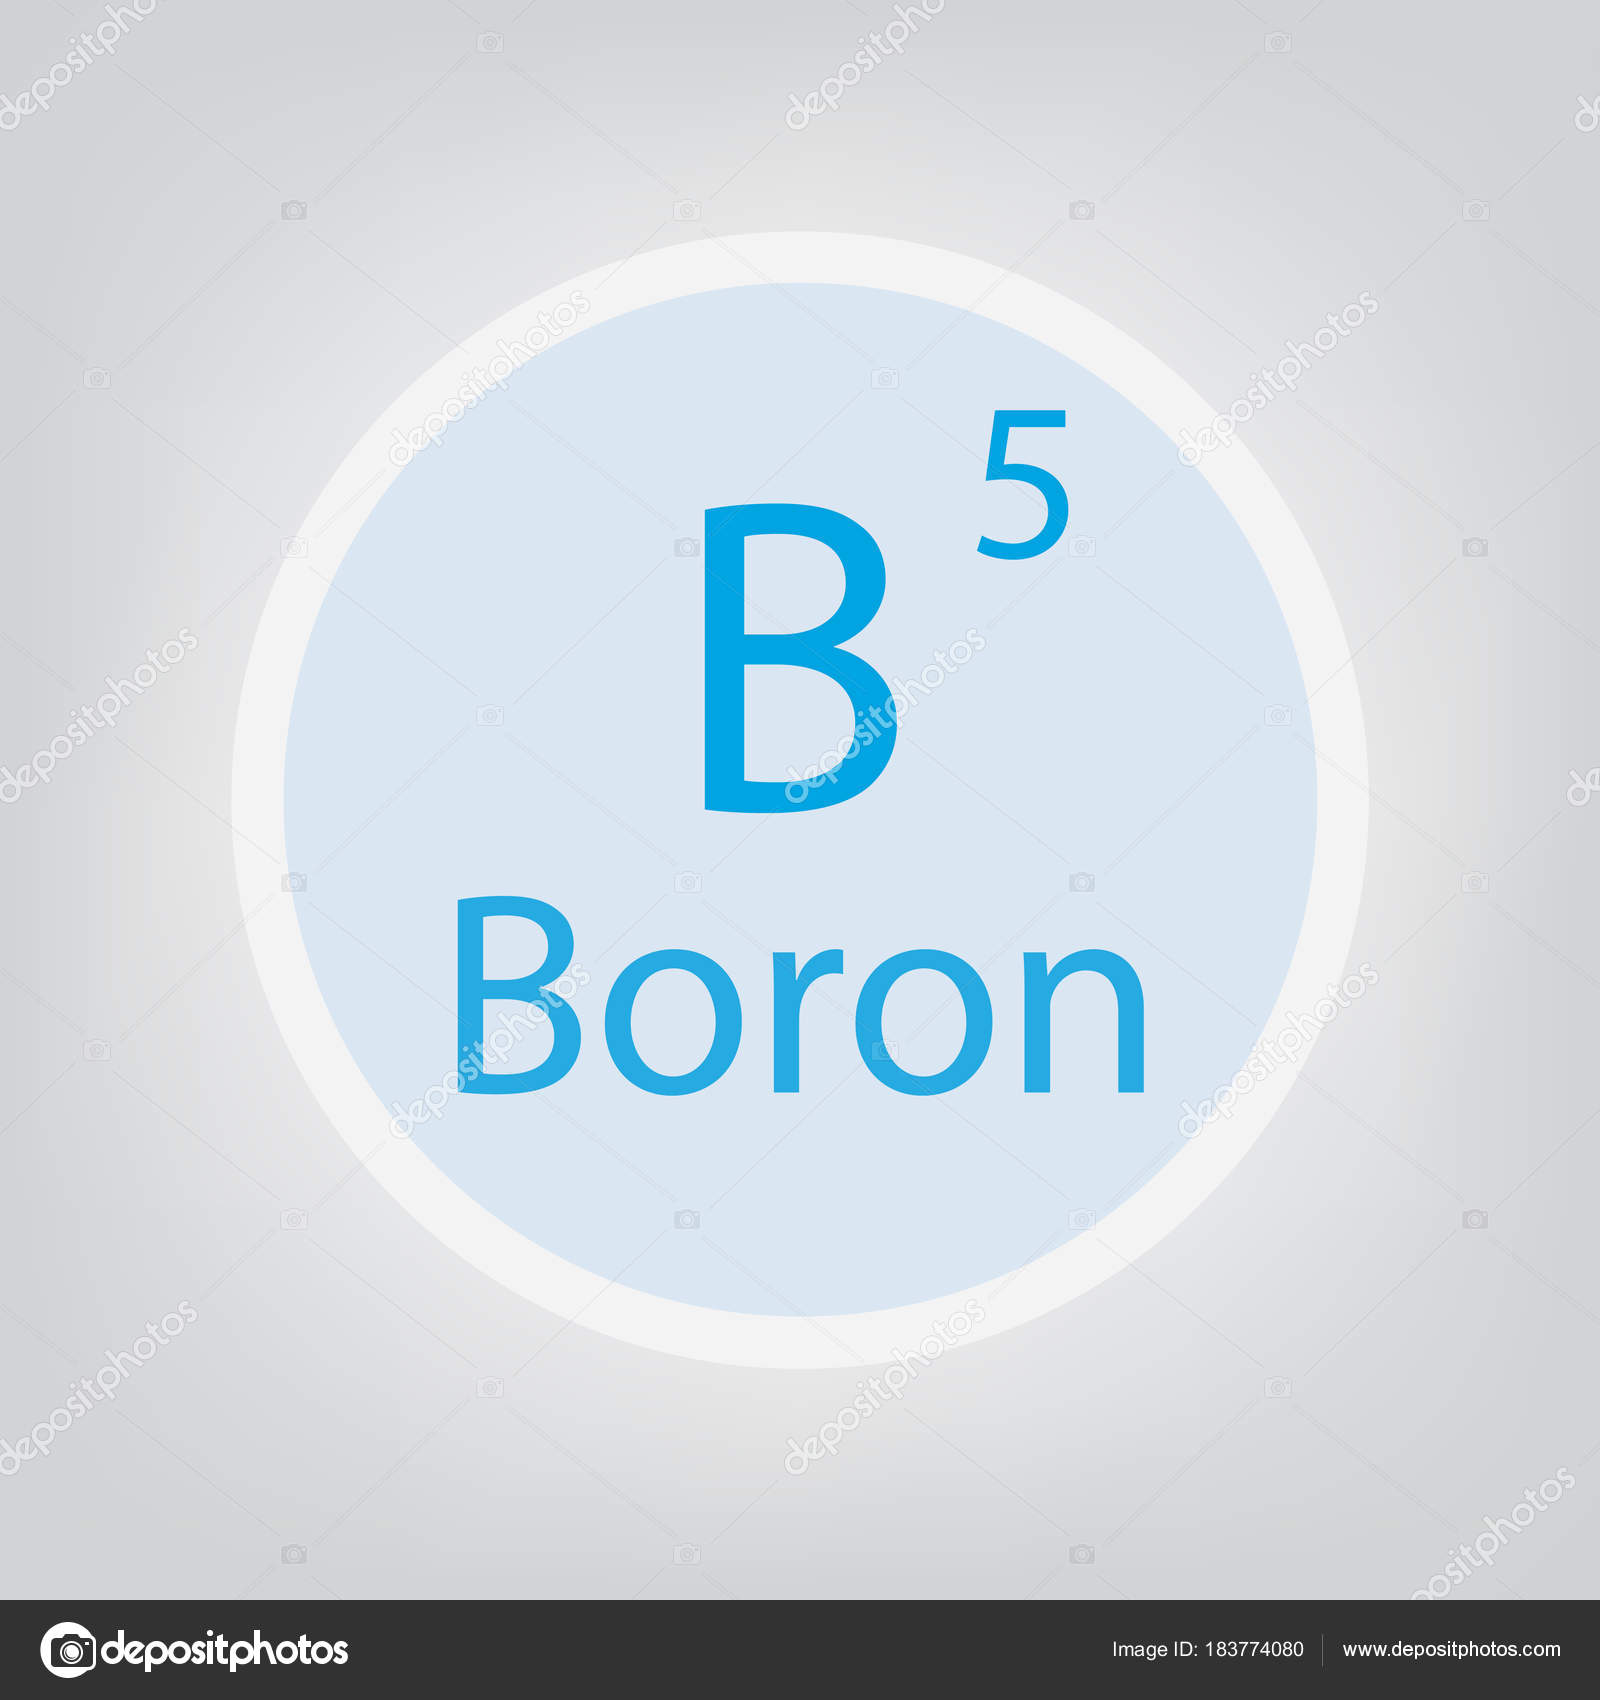 Boron b chemical element icon vector illustration stock vector boron b chemical element icon vector illustration stock vector buycottarizona